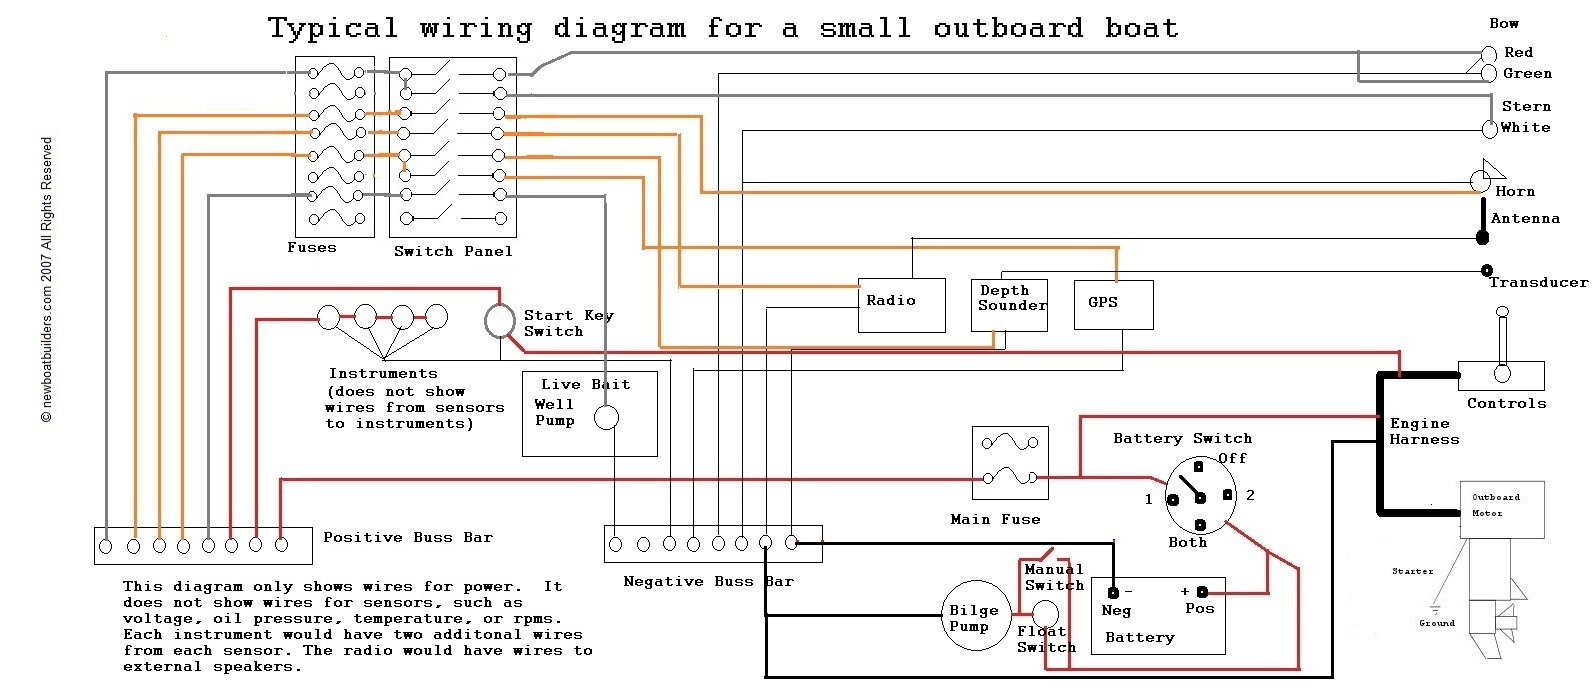 [DIAGRAM_3US]  Boat Building Standards | Basic Electricity | Wiring Your Boat | Jon Boat Fuse Box Setup |  | newboatbuilders.com